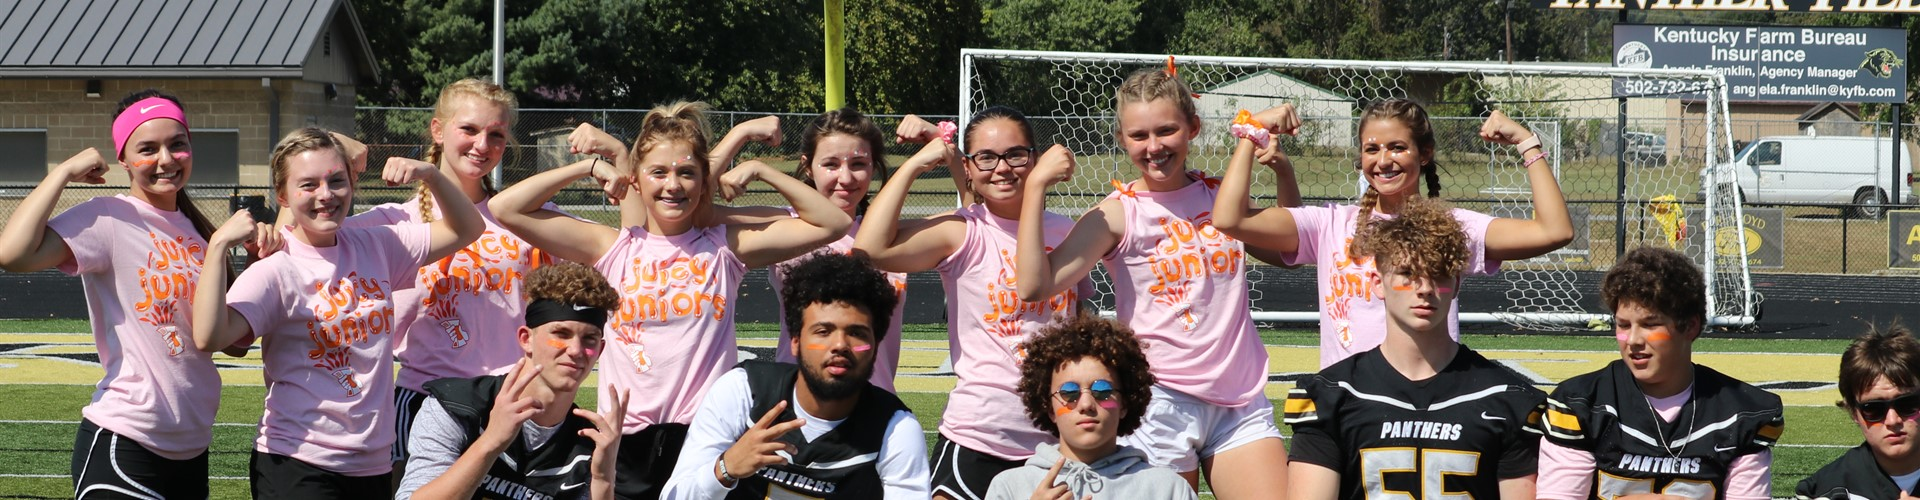 Row of girls in pink shirts flex behind row of boys in football jerseys.